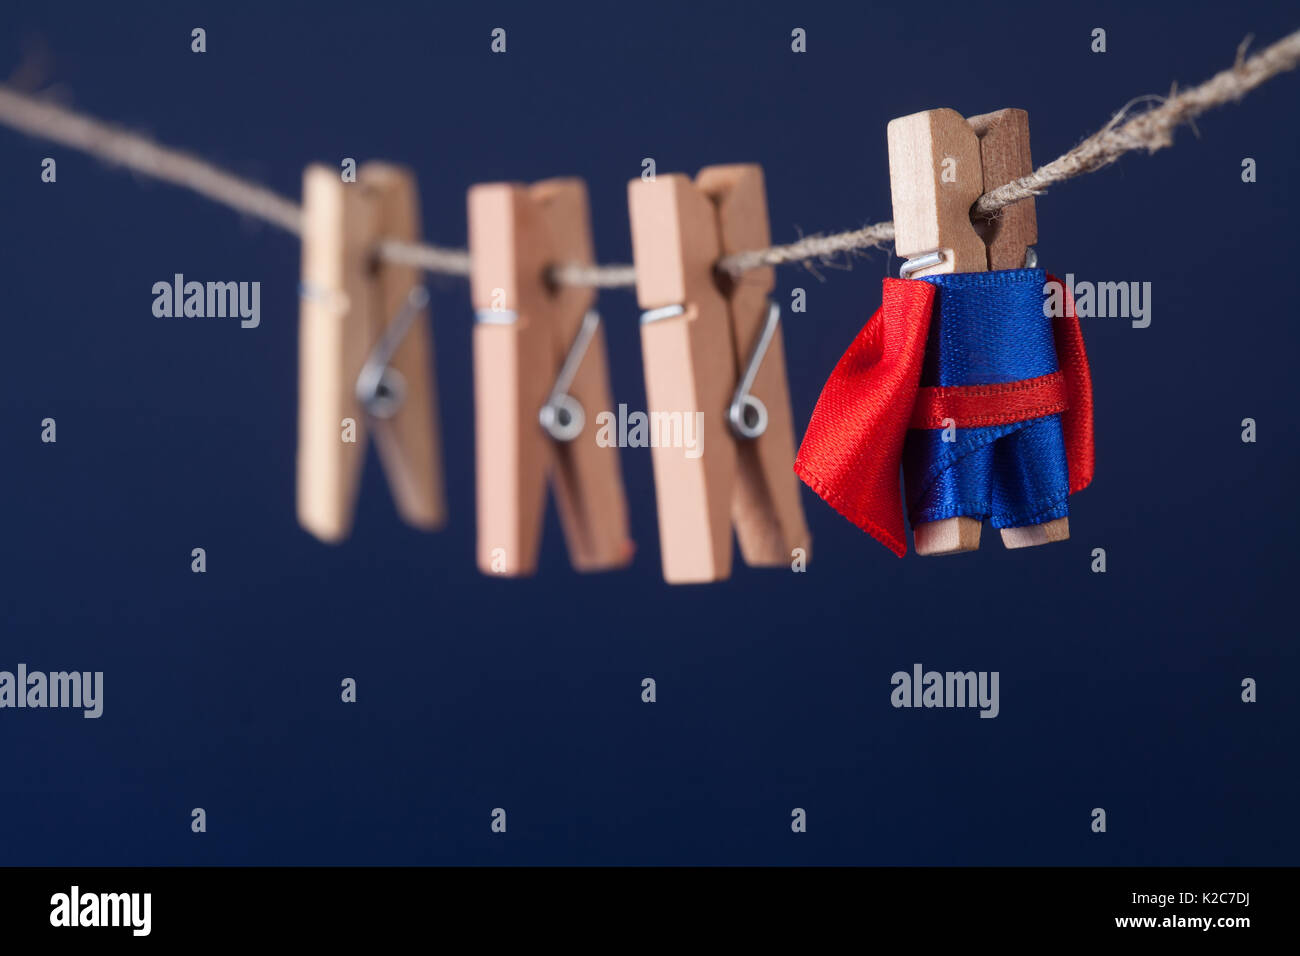 Powerful super hero conceptual photo with superstar clothespin character in blue suit red cape. leadership and wooden clothespins team at work. Dark background. soft focus. macro view - Stock Image